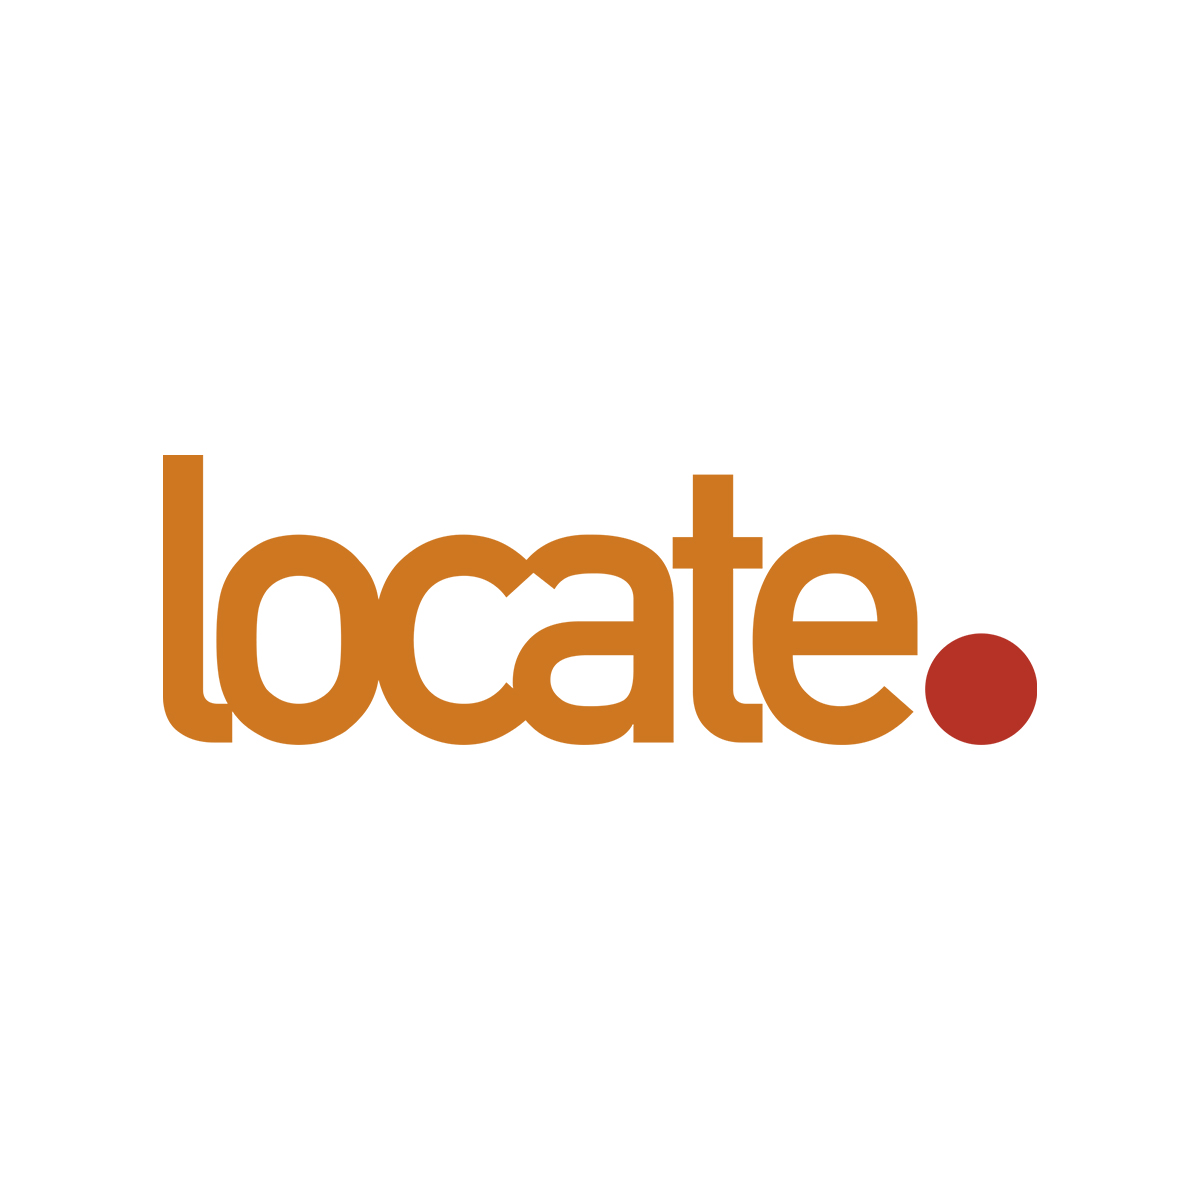 Locate Marketing LLC image